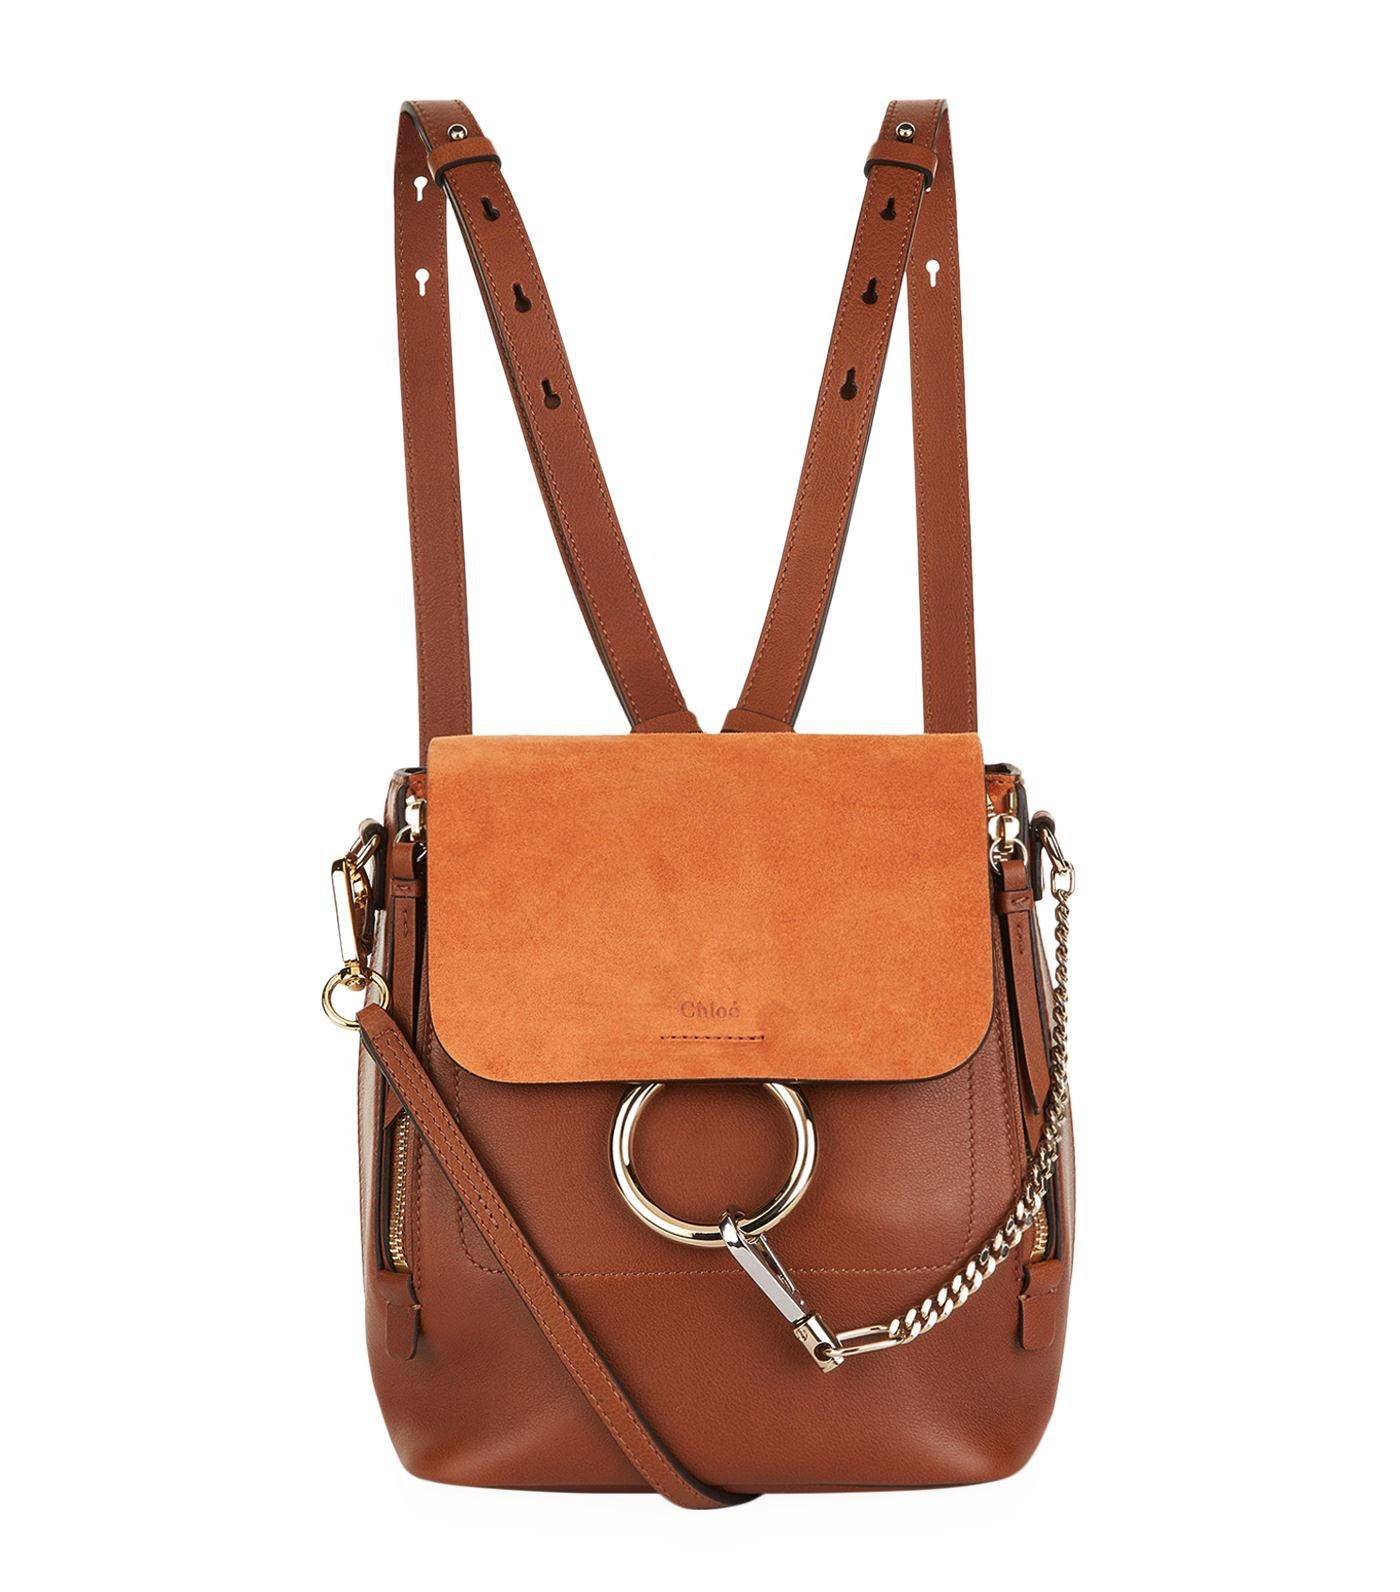 Lyst - Chloé Small Faye Backpack in Brown - Save 27% 97315ceca6c80